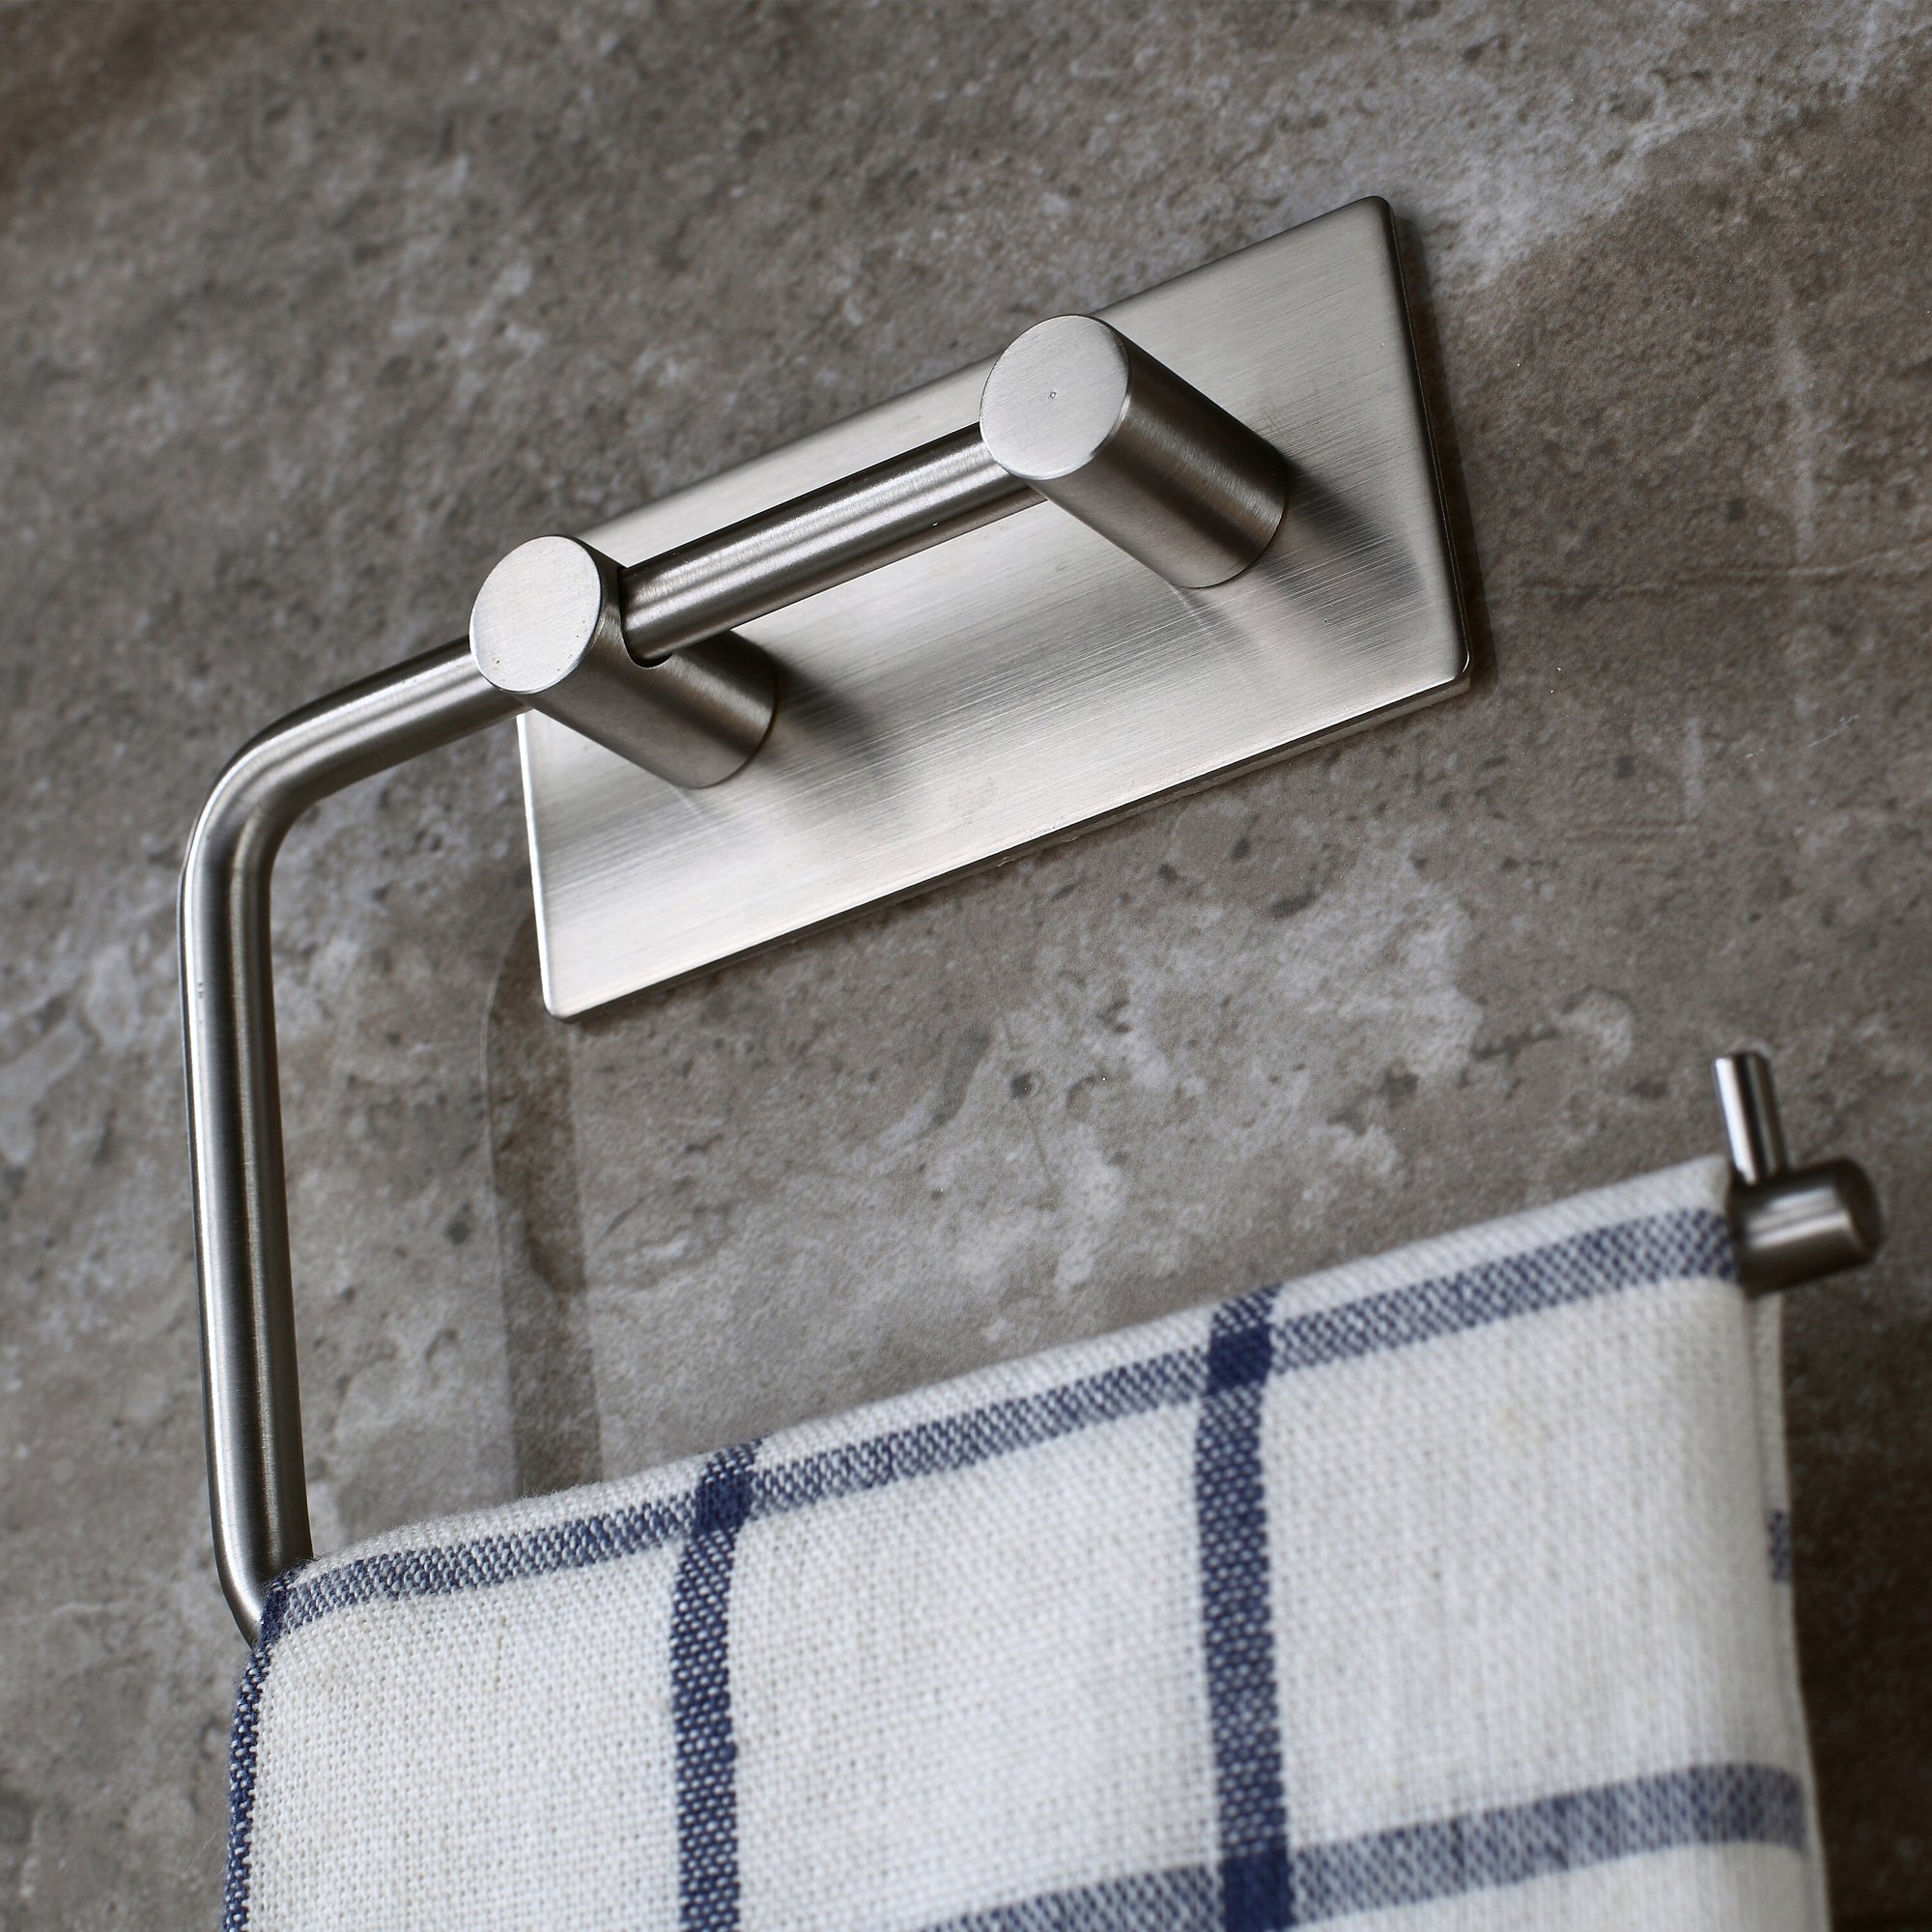 Mellewell Self Adhesive Toilet Paper Roll Holder Hand Towel Hanger for Bathroom and Kitchen, Stainless Steel Brushed Nickel, 02004PH